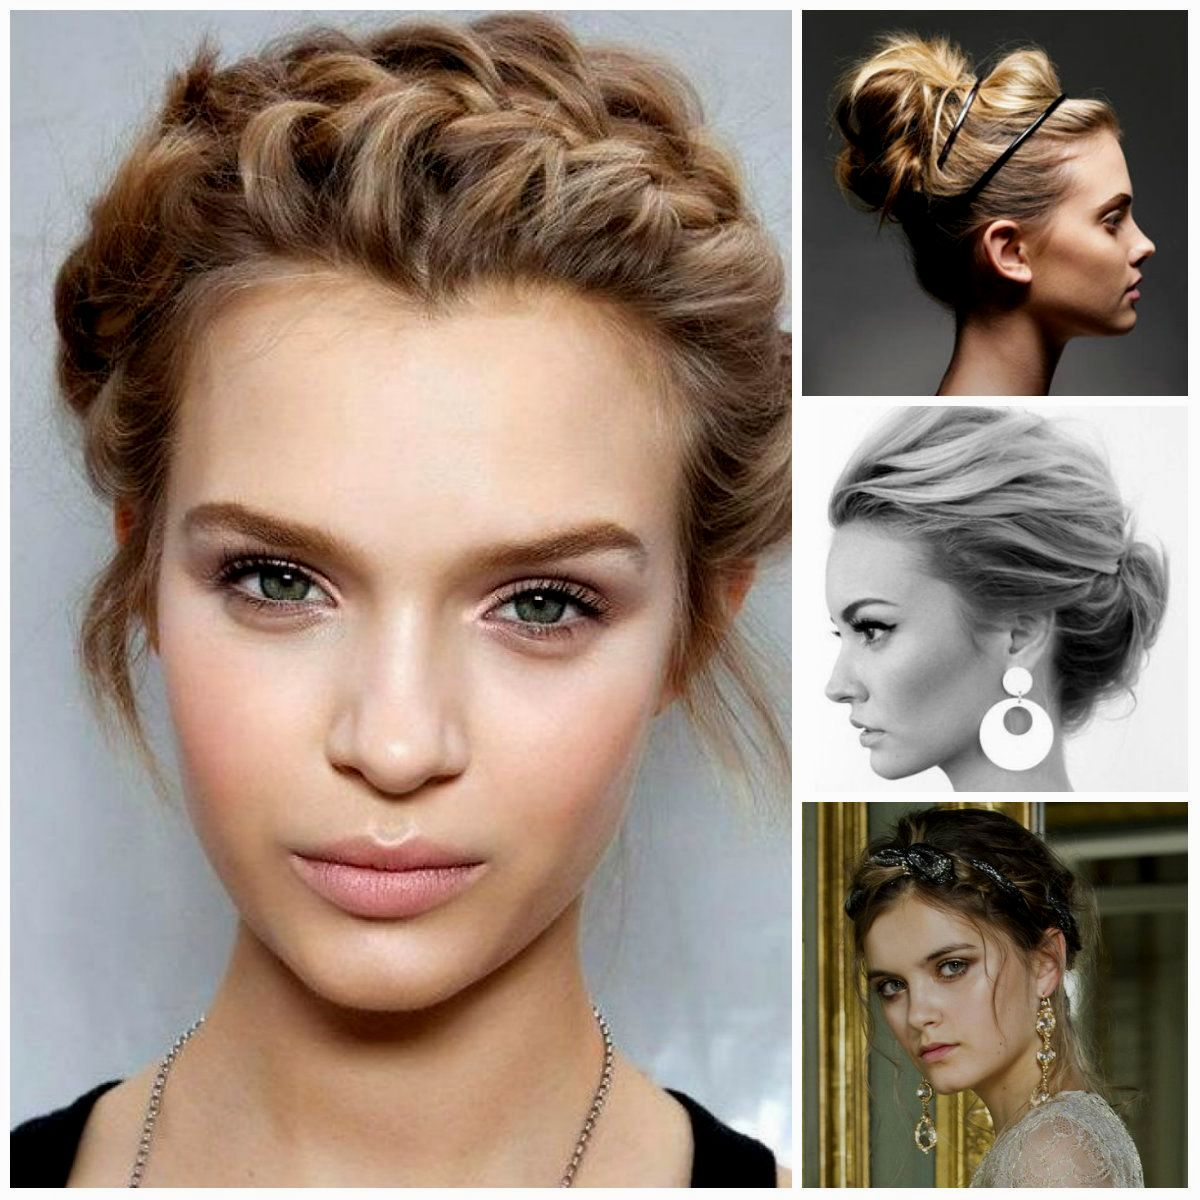 terribly cool hairstyles assault collection-Terrific Hairstyles Upstate Models